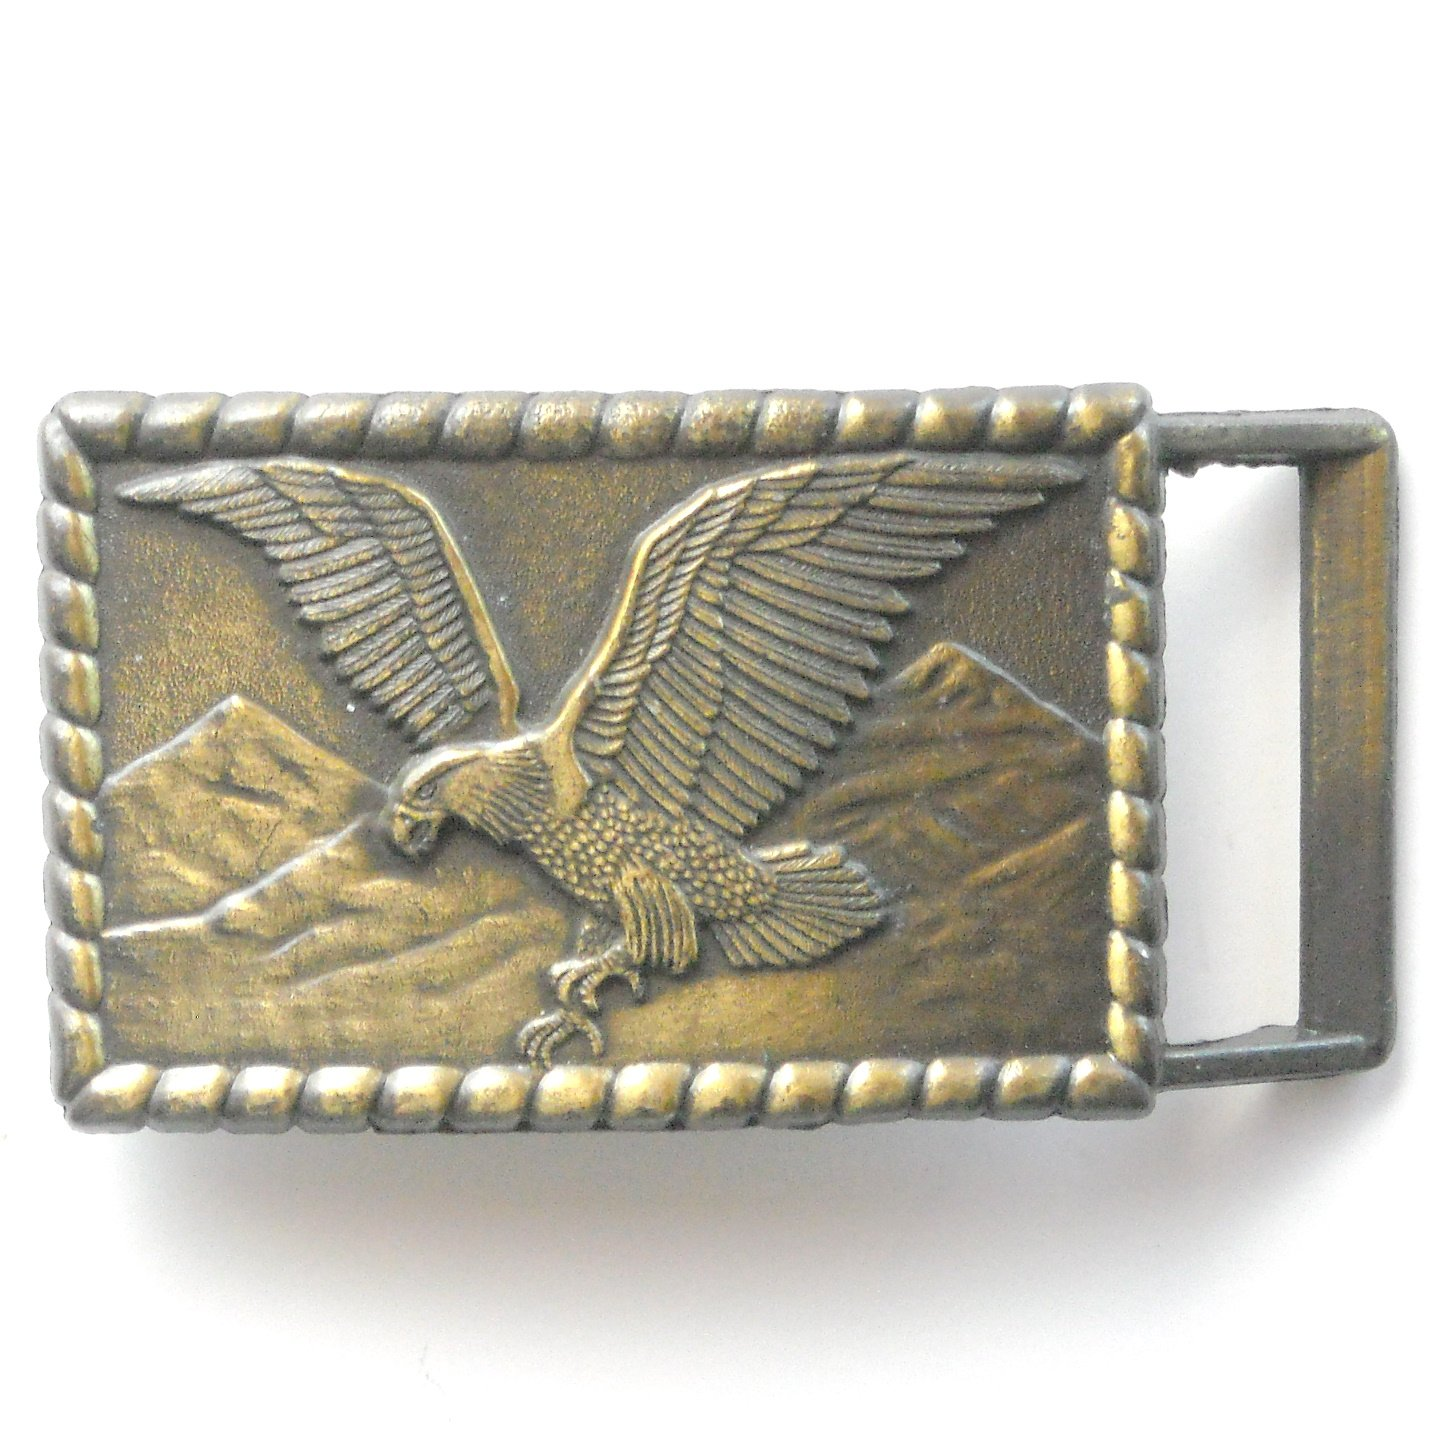 Vintage Western American Bald Eagle Brass metal alloy belt buckle